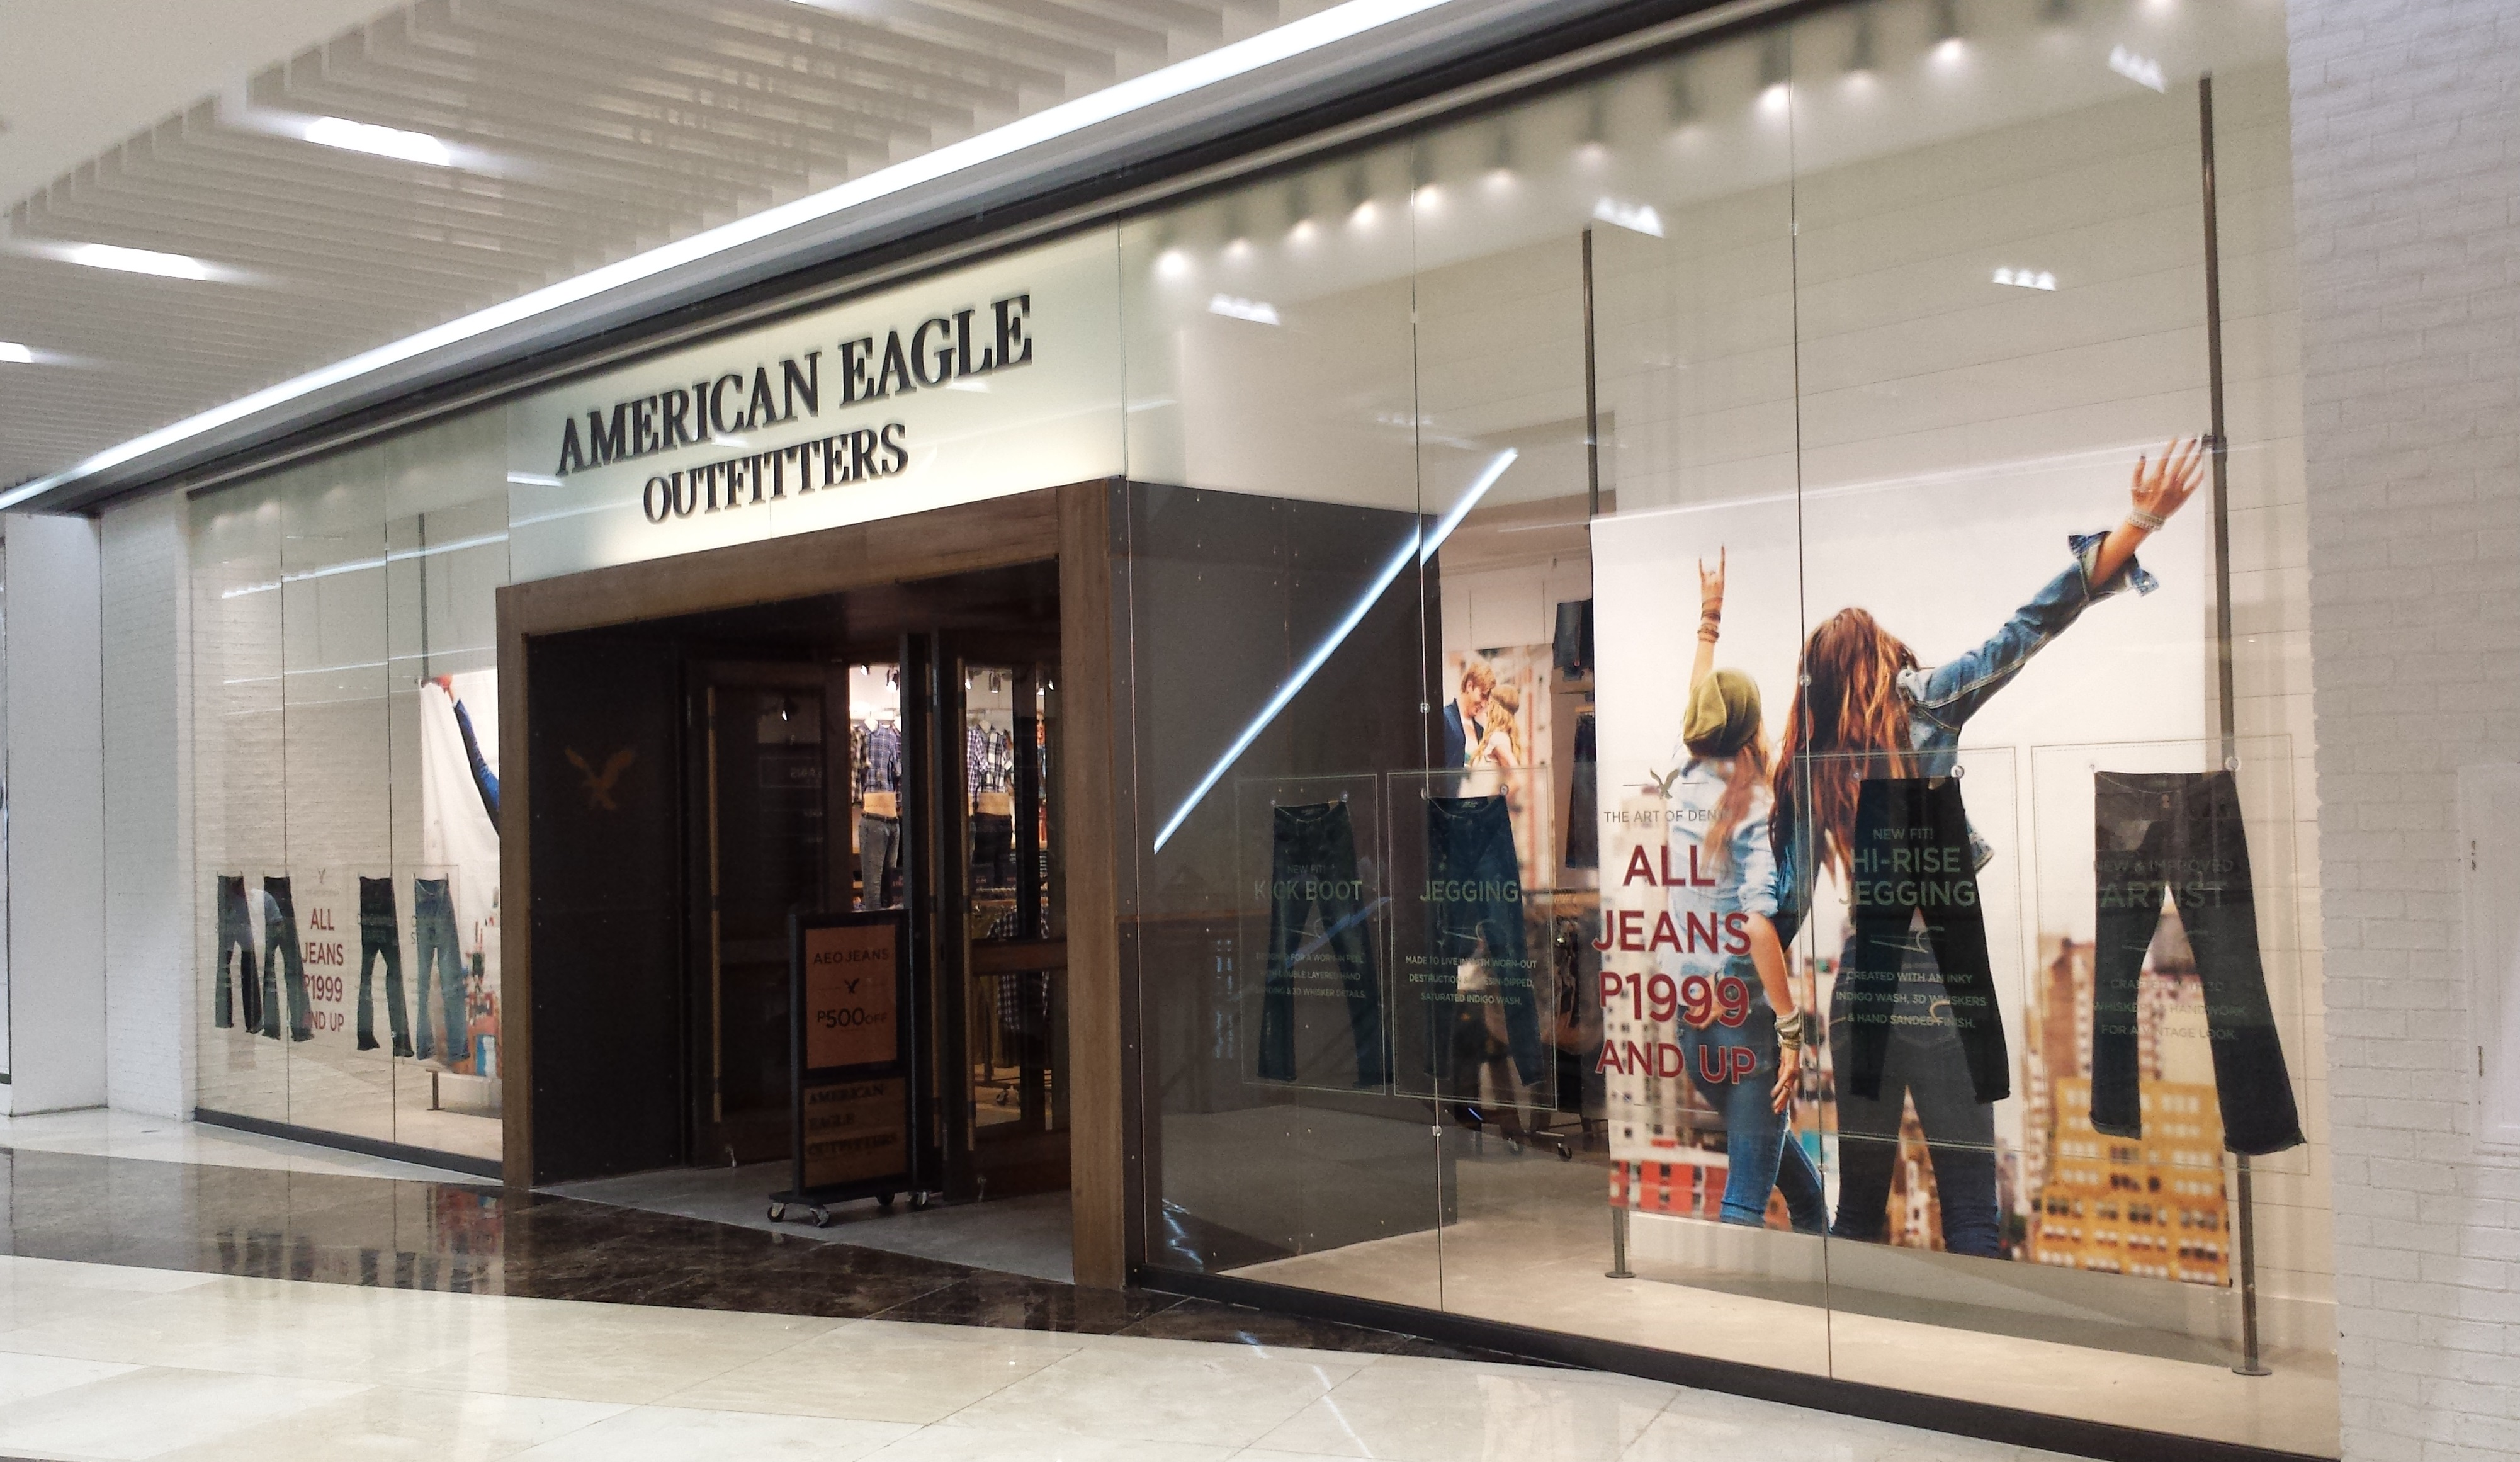 File:American Eagle Outfitters in SM Aura, Bonifacio Global City.jpg